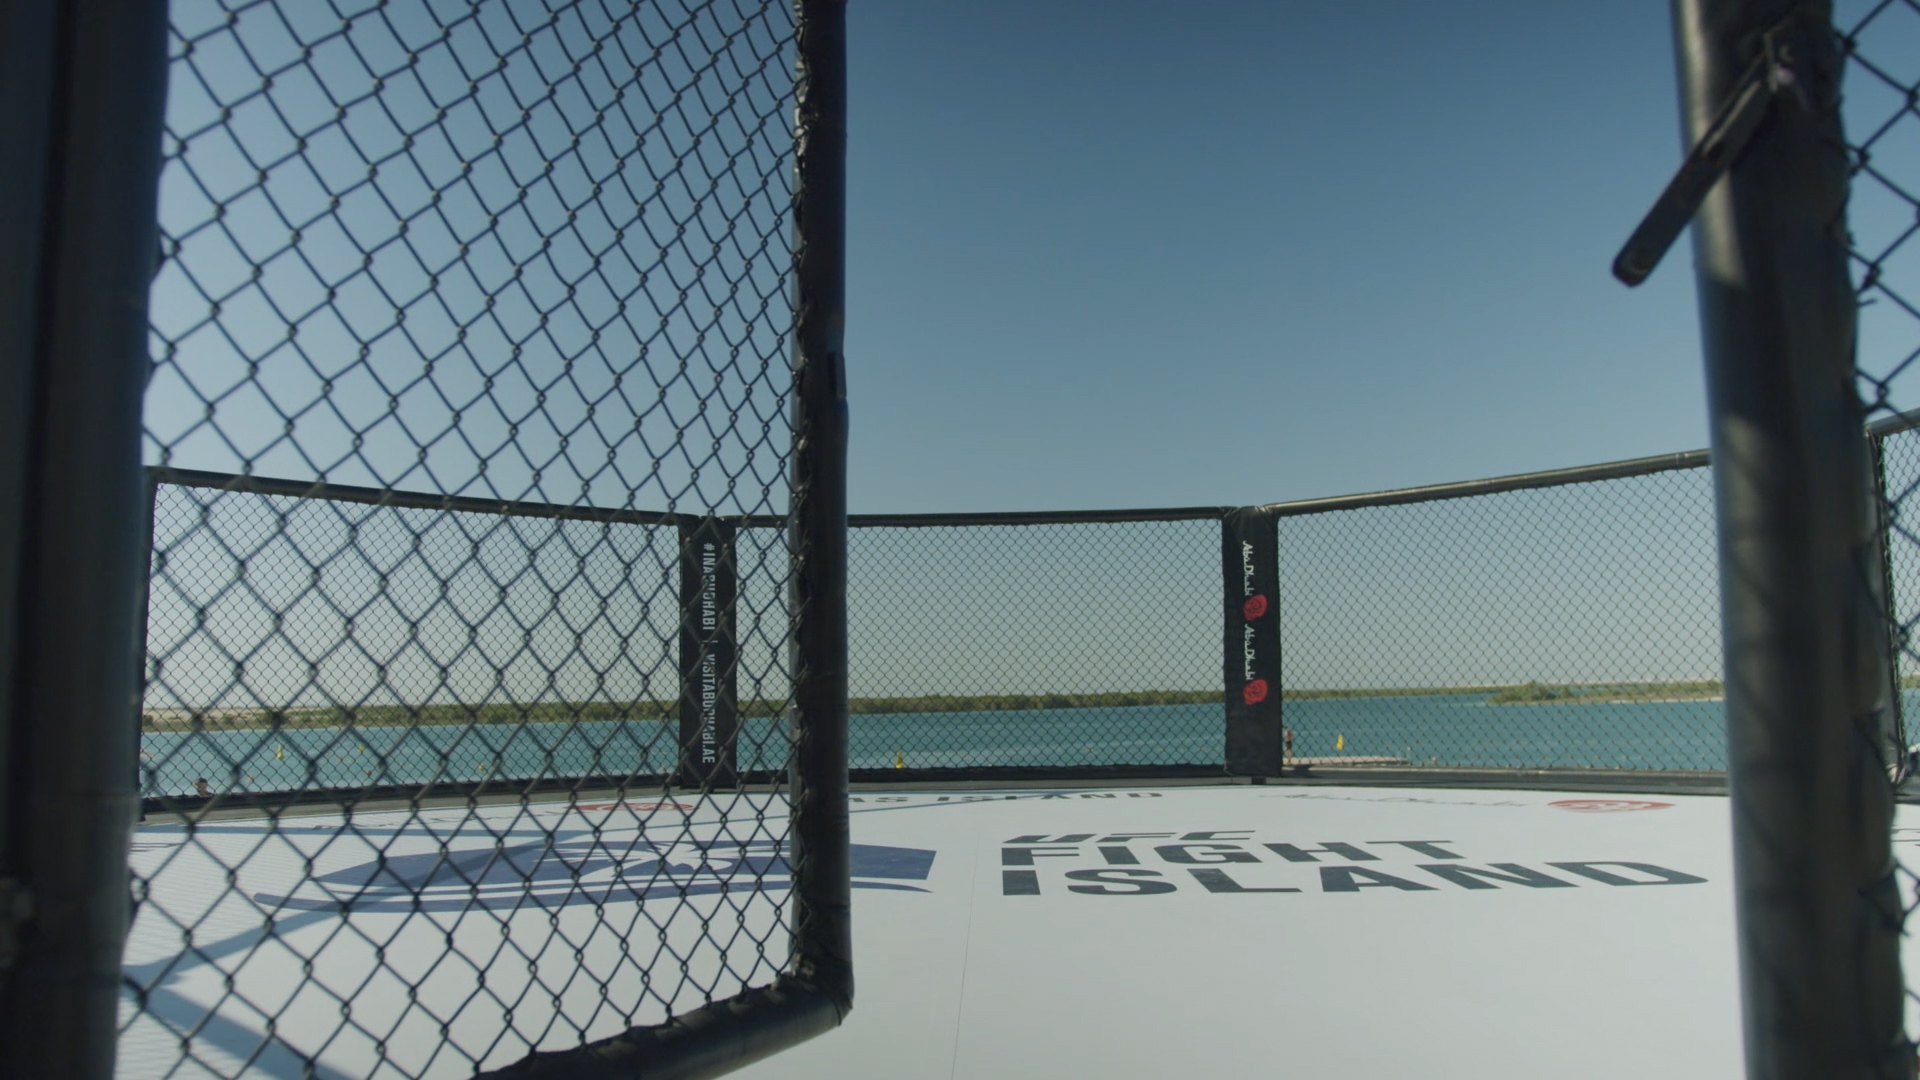 A general view of the beach Octagon on UFC Fight Island in Abu Dhabi 2020